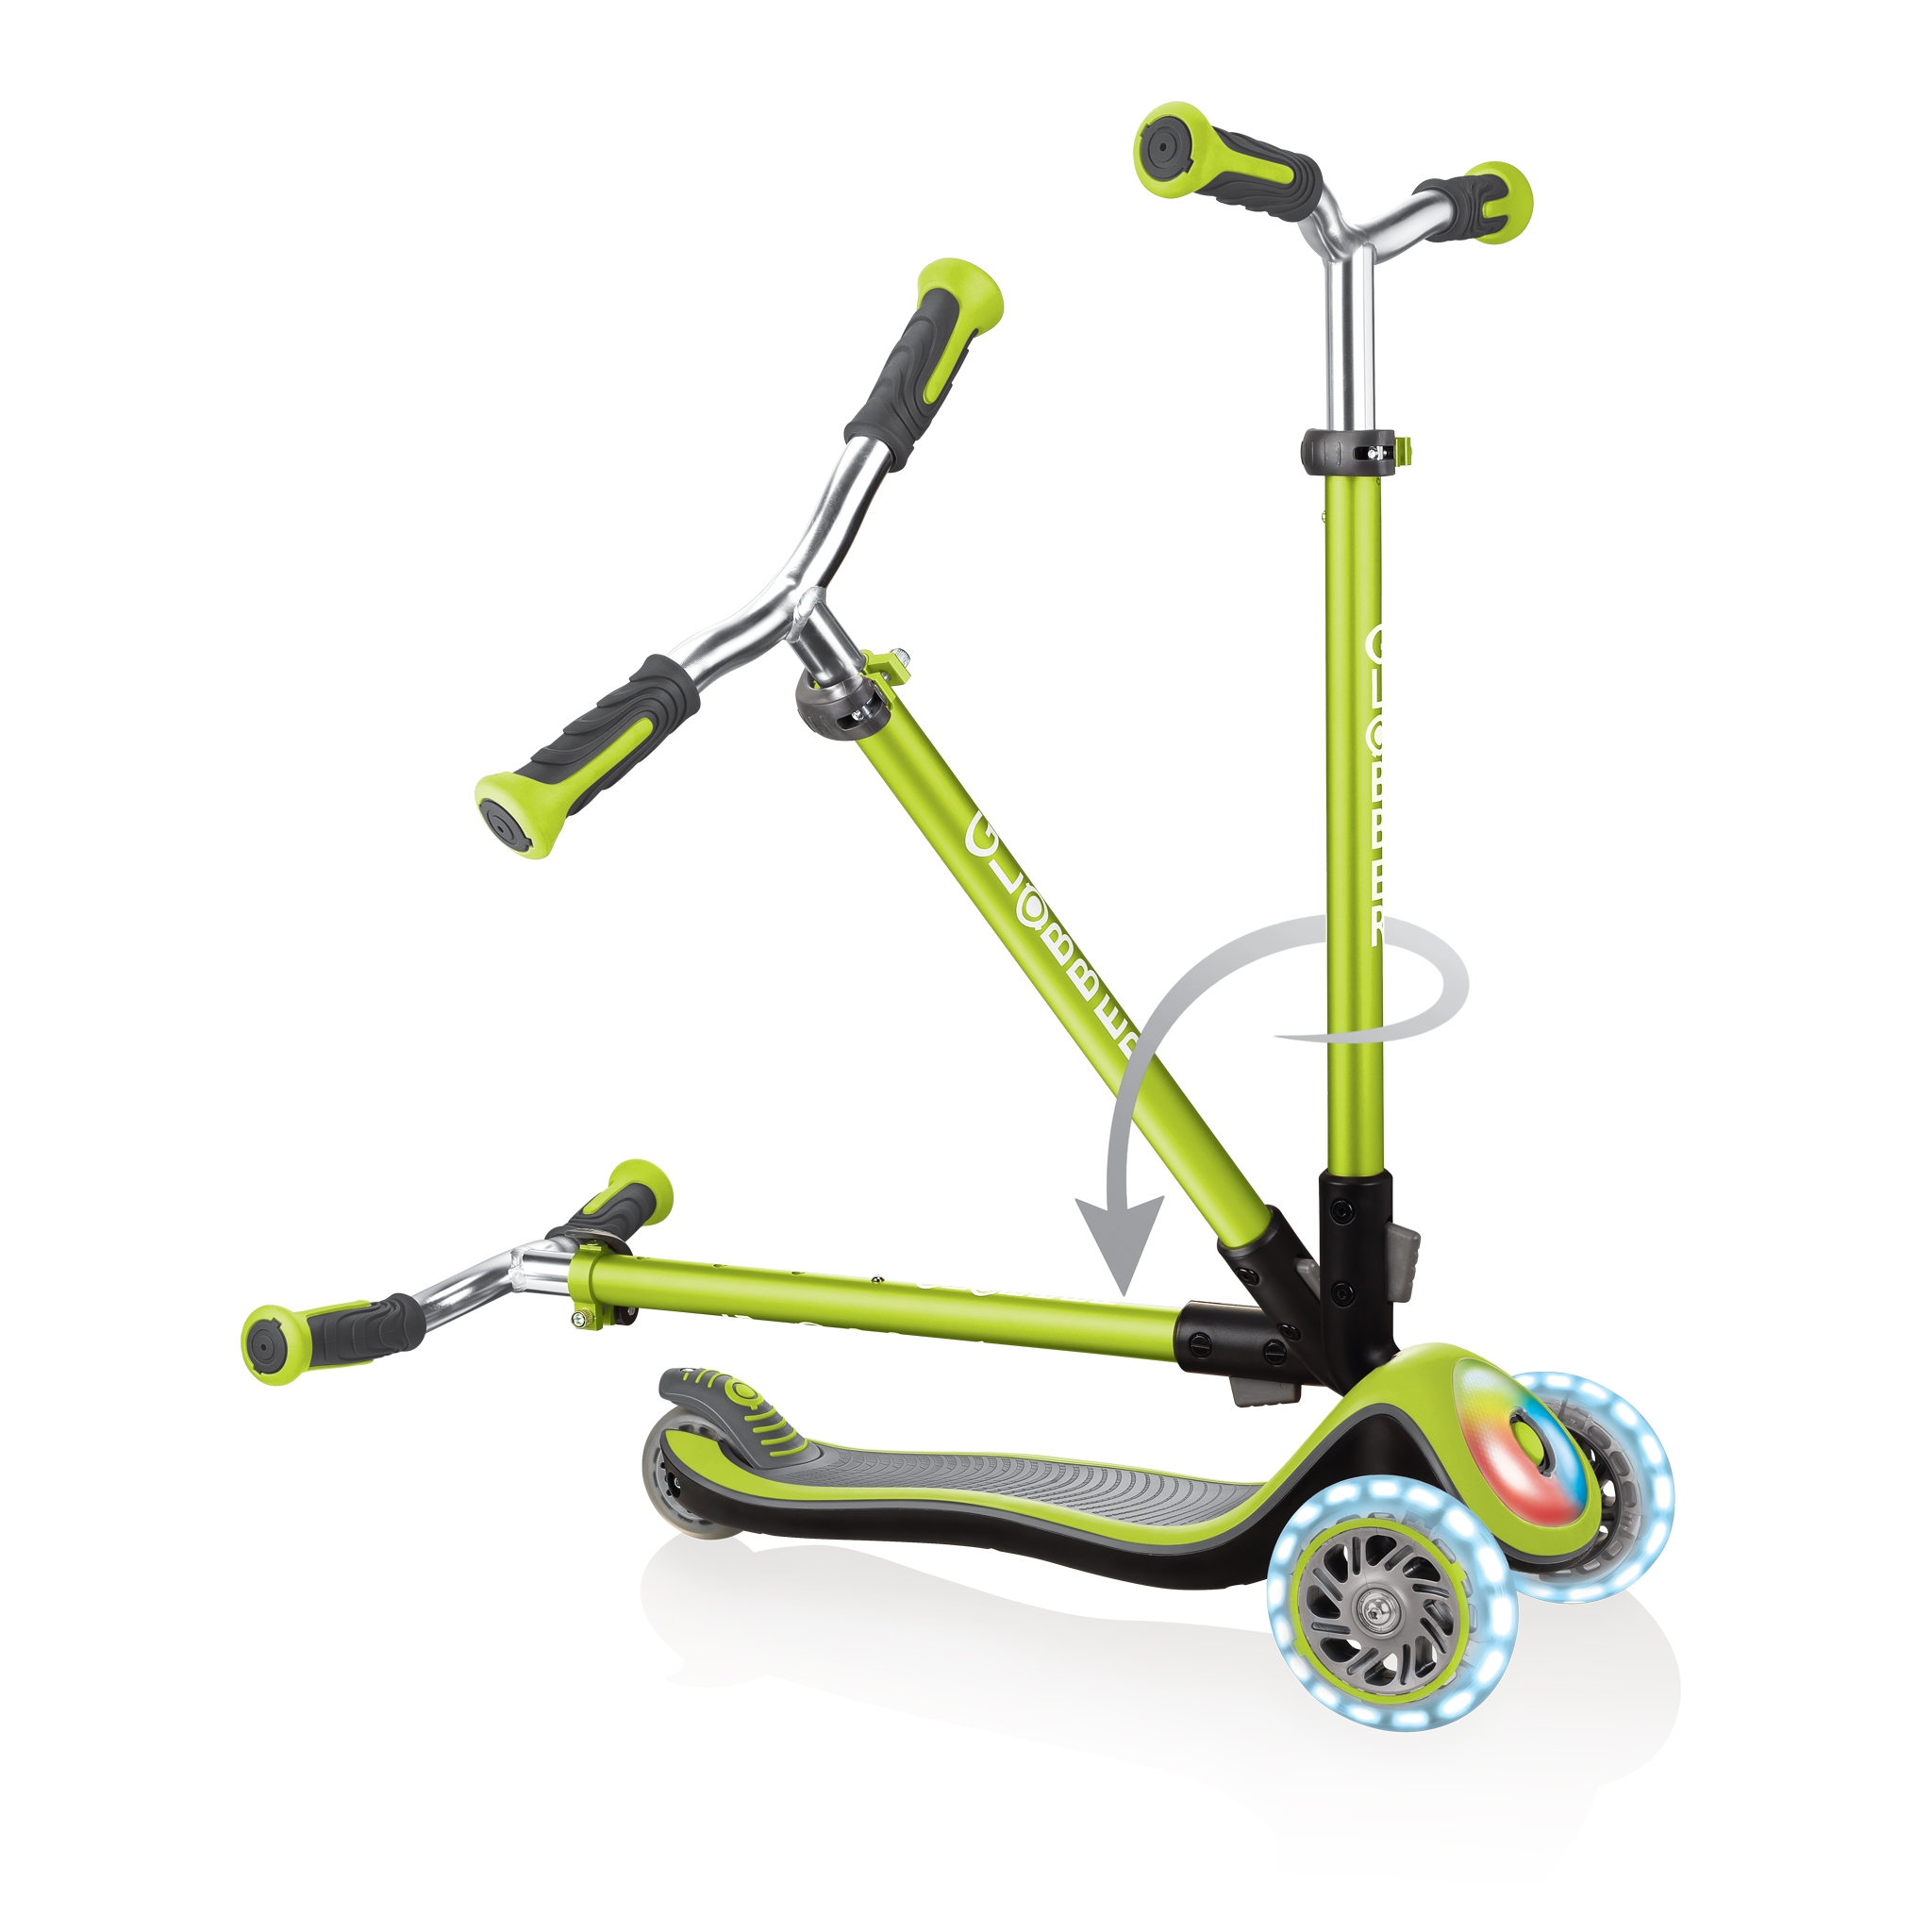 Globber-ELITE-PRIME-best-3-wheel-scooter-for-kids-with-patented-folding-system-lime-green